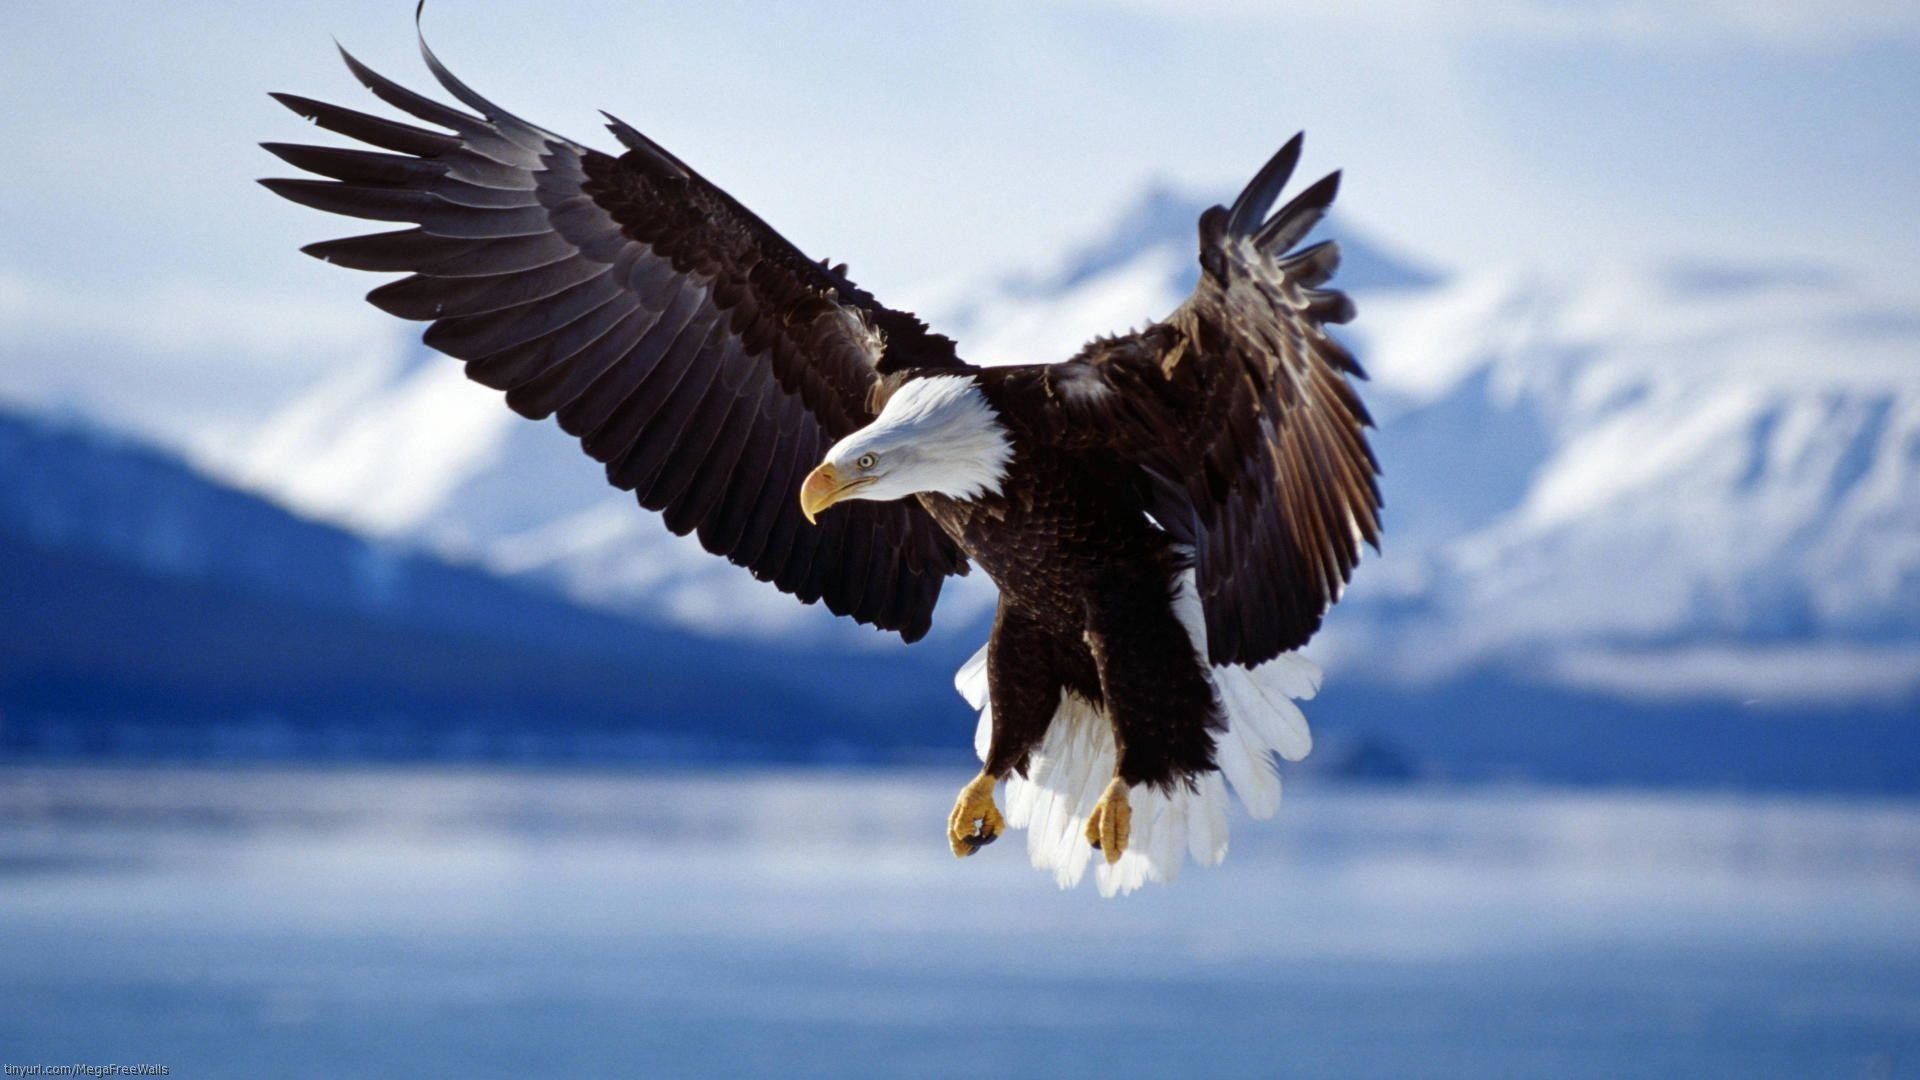 1920x1080 58 Bald Eagle Wallpapers | Bald Eagle Backgrounds